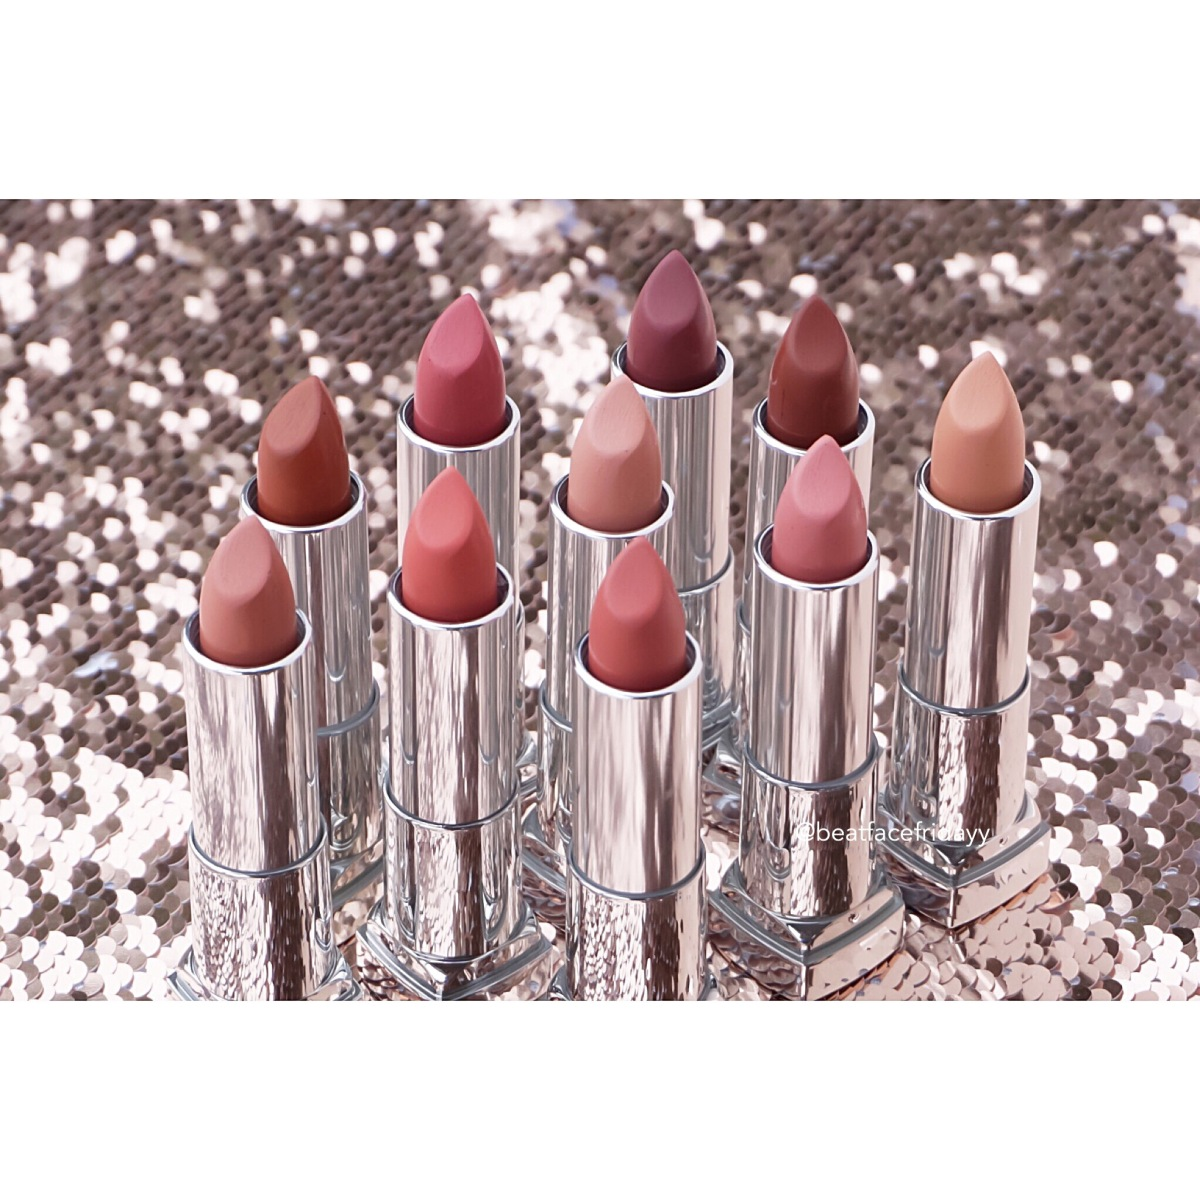 Maybelline Color Sensational Inti-Matte Nudes Hot Sand, Purely Nude, Peach Buff, Beige Babe, Honey Pink, Naked Coral, Raw Chocolate, Almond Rose, Toasted Truffle, Brown Blush Lipstick Swatches